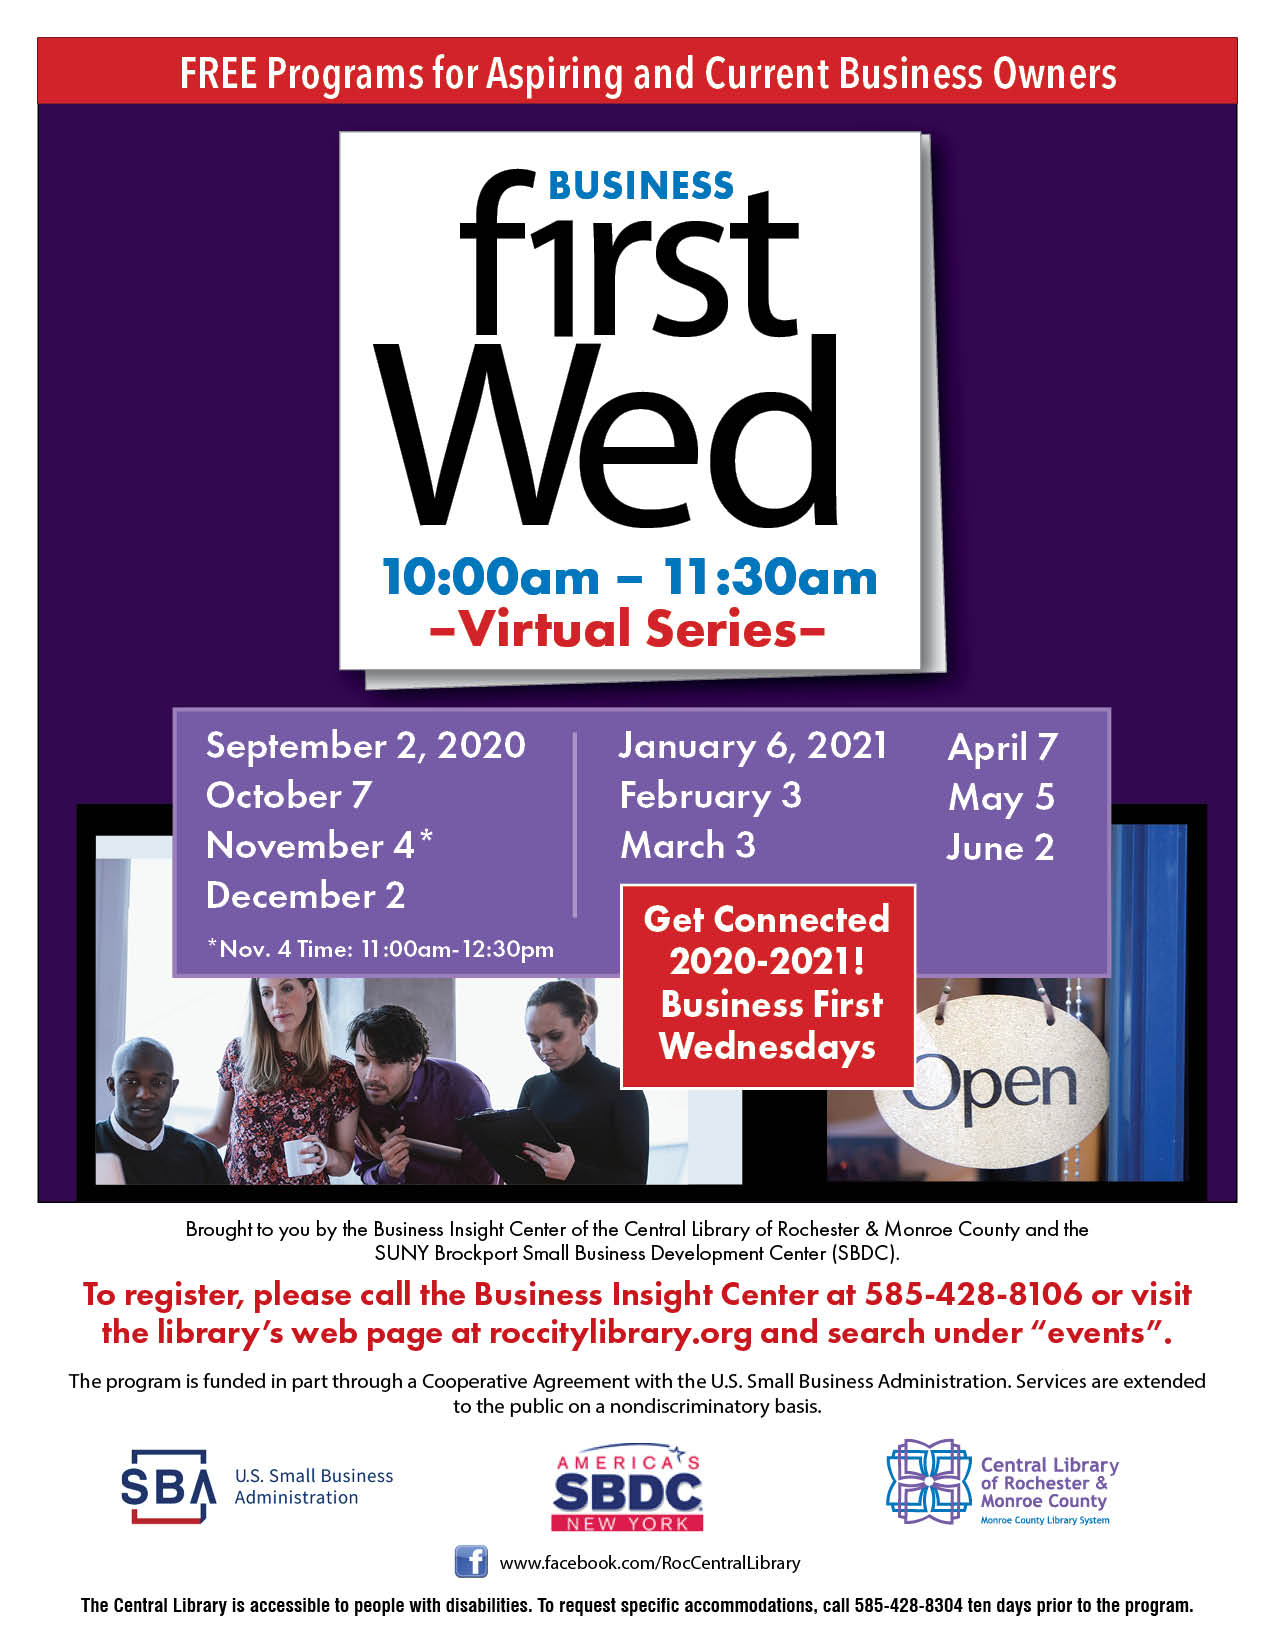 Business First Wednesday- Marketing for Small Business During the COVID-19 Crisis